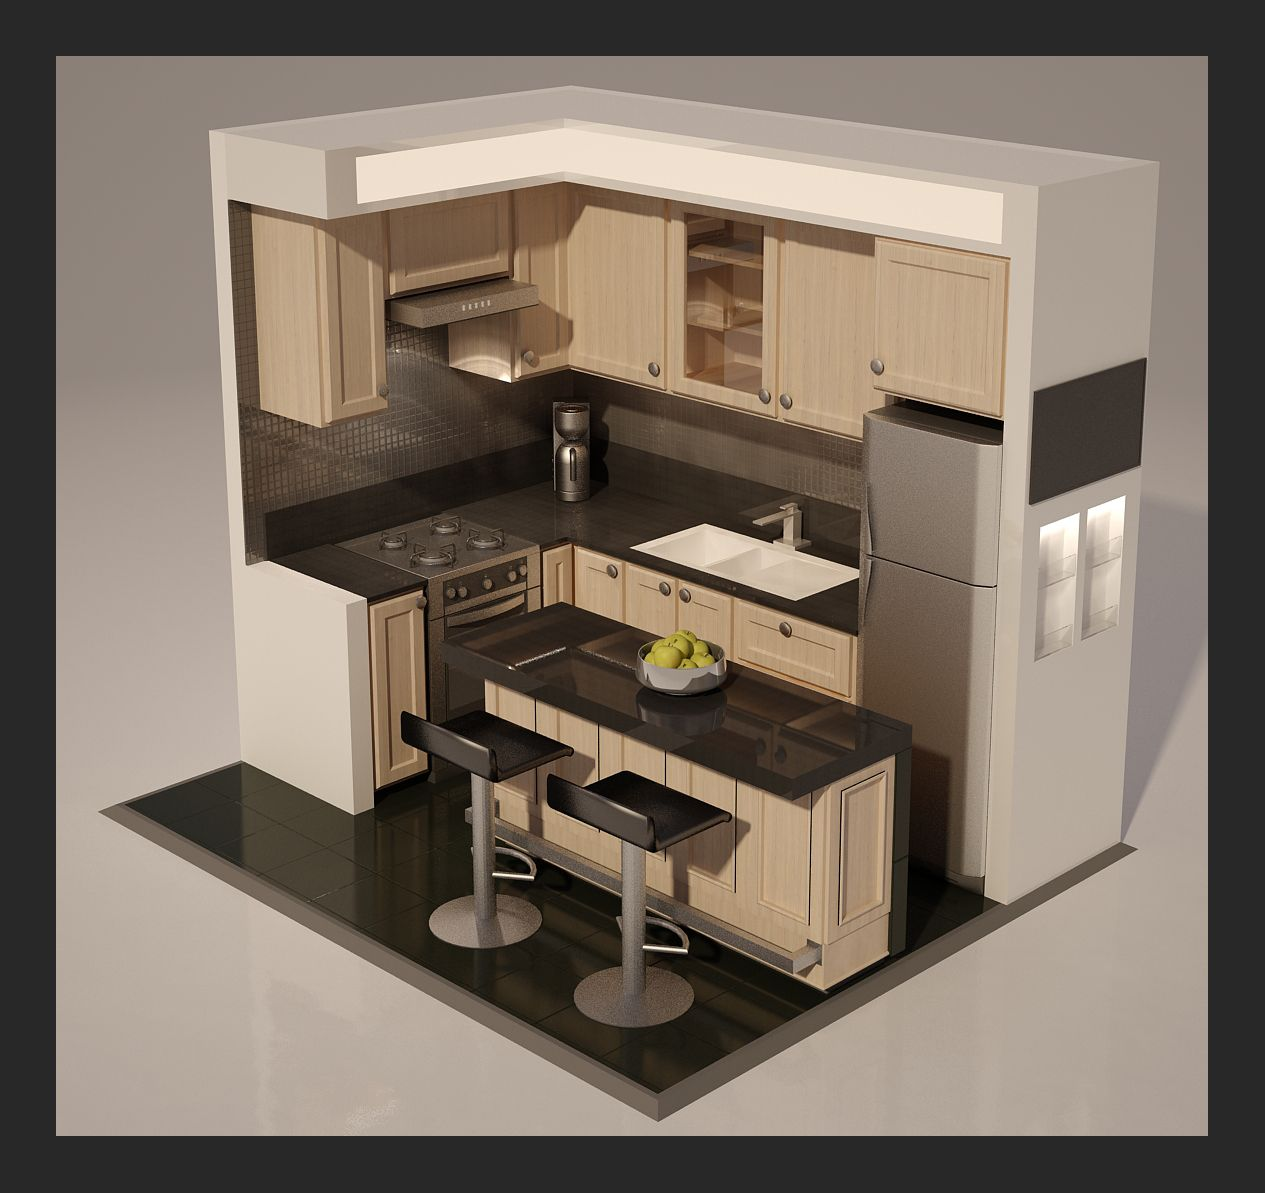 Pin By SWEDISH DESIGNS On Modular Kitchen Systems